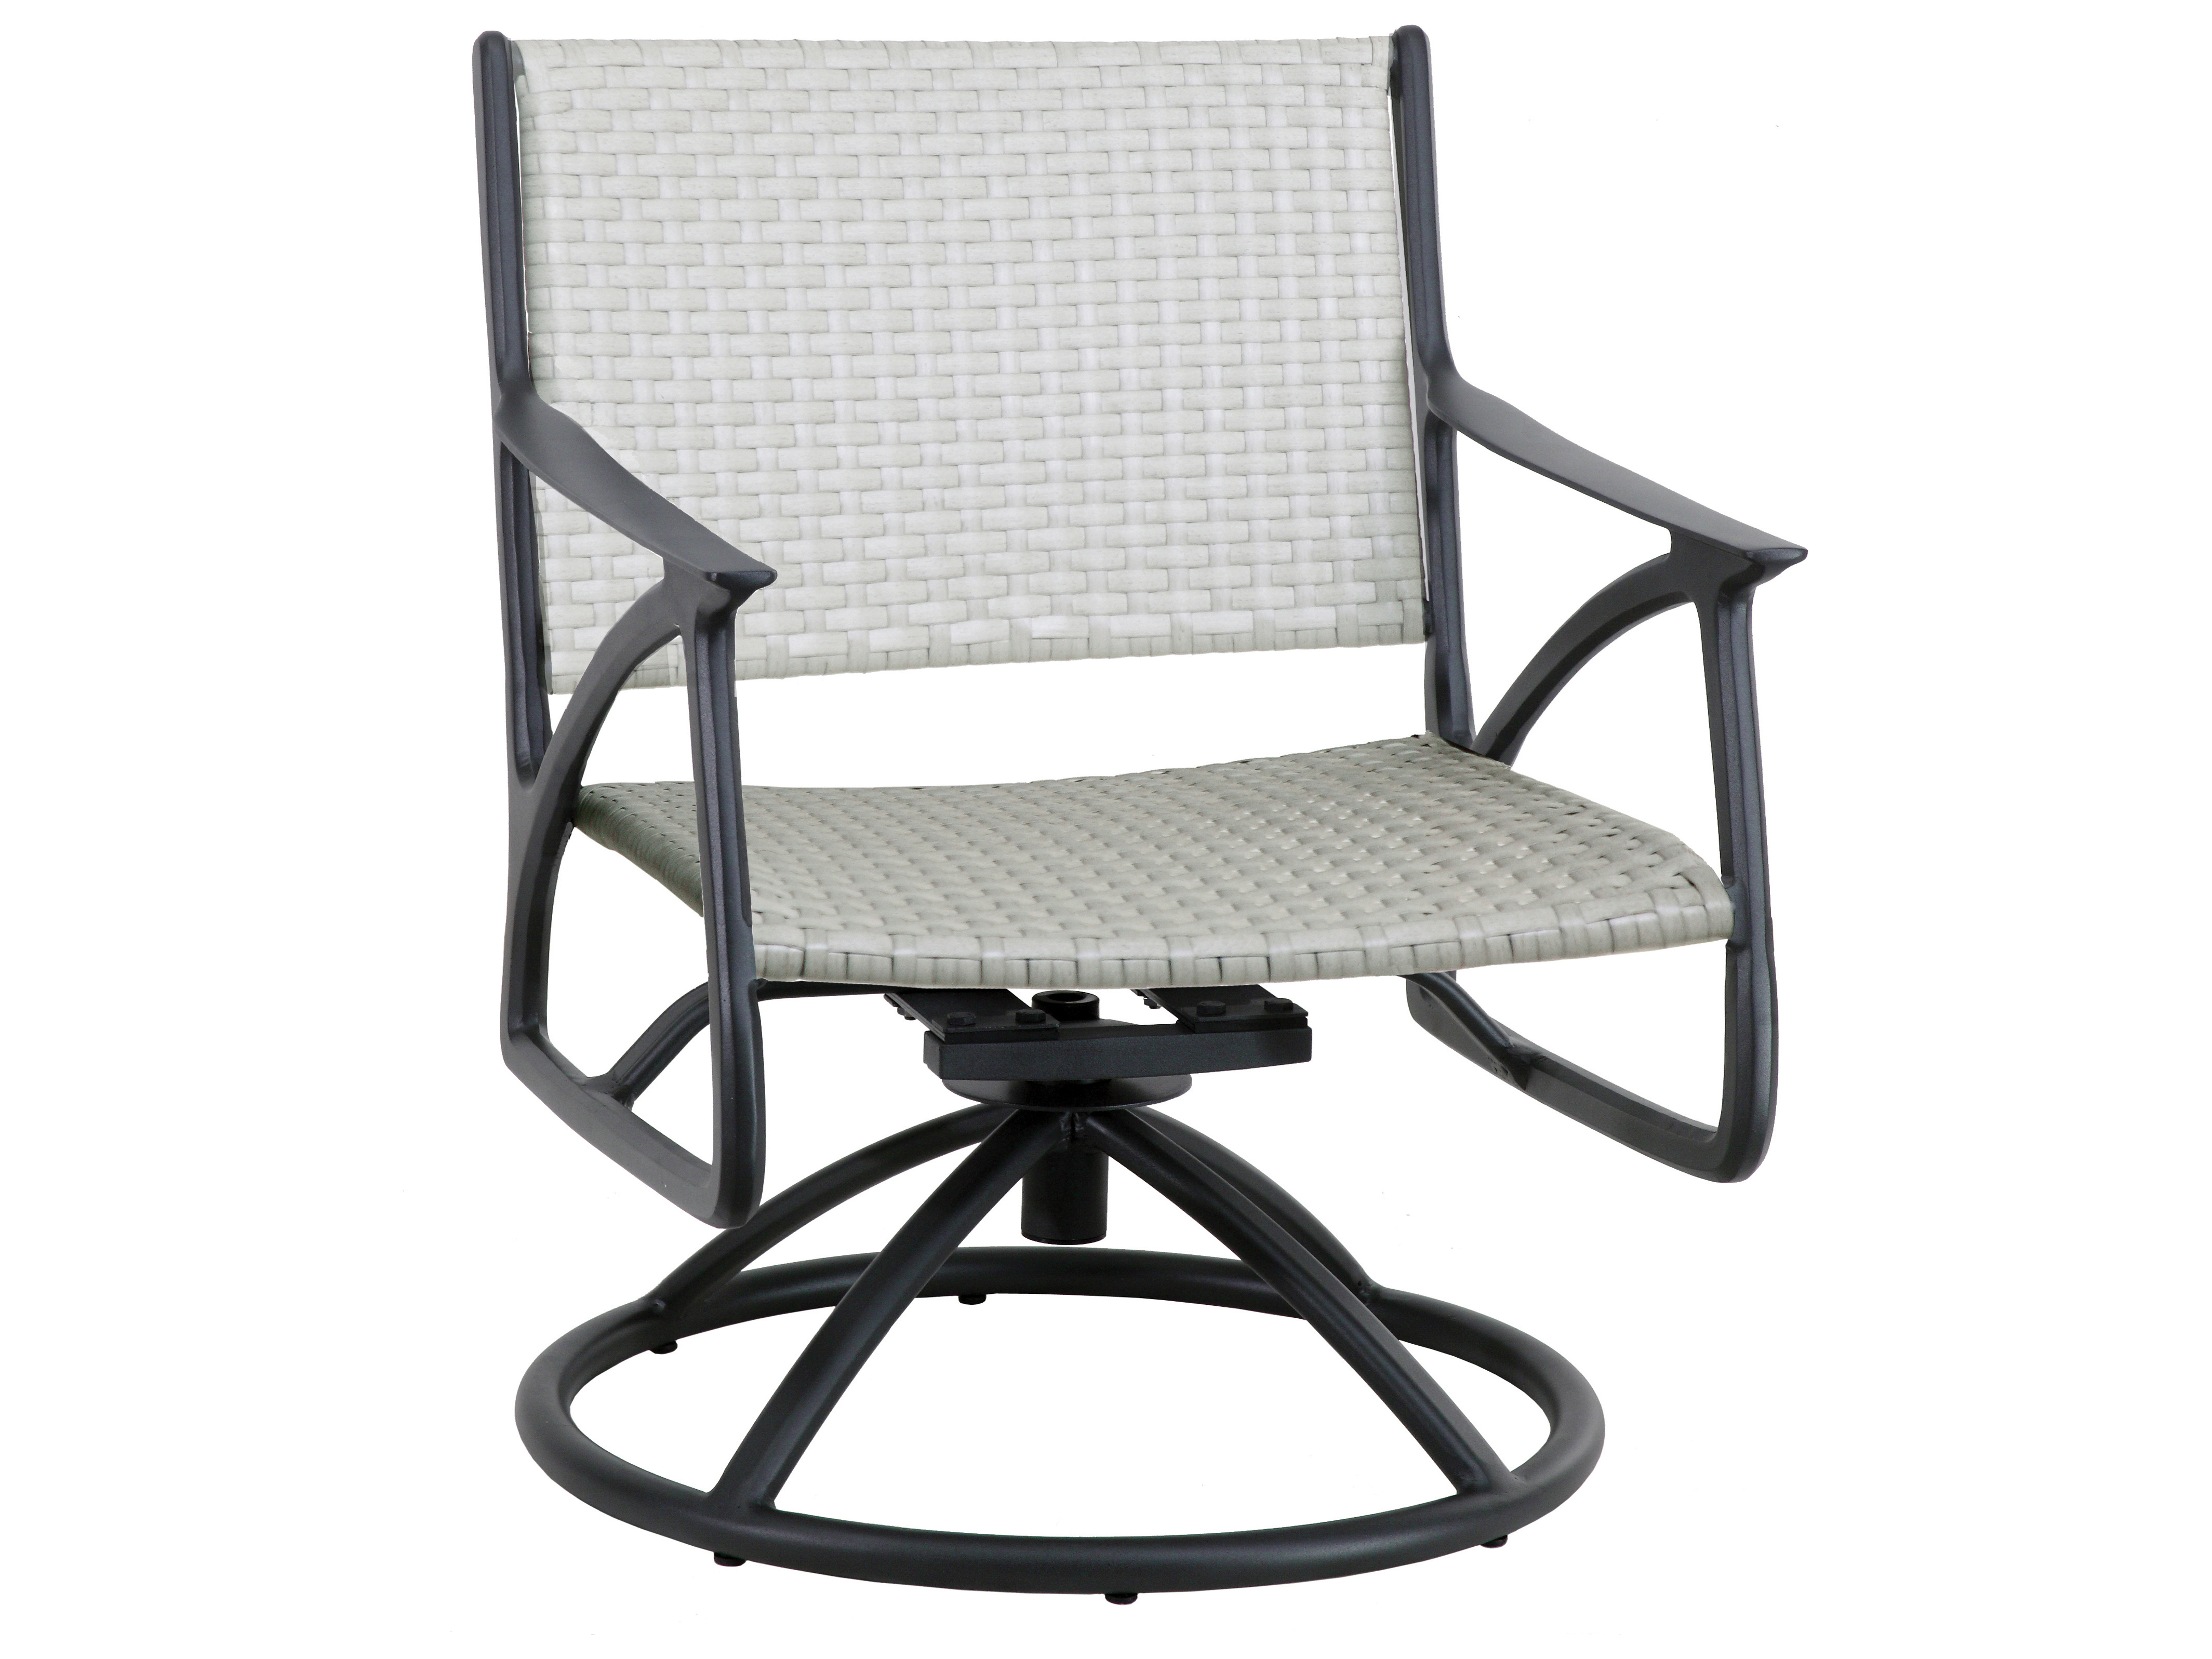 Amari Swivel Accent Chairs Intended For Recent Gensun Amari Woven Aluminum Wicker Swivel Rocking Lounge Chair (View 5 of 20)